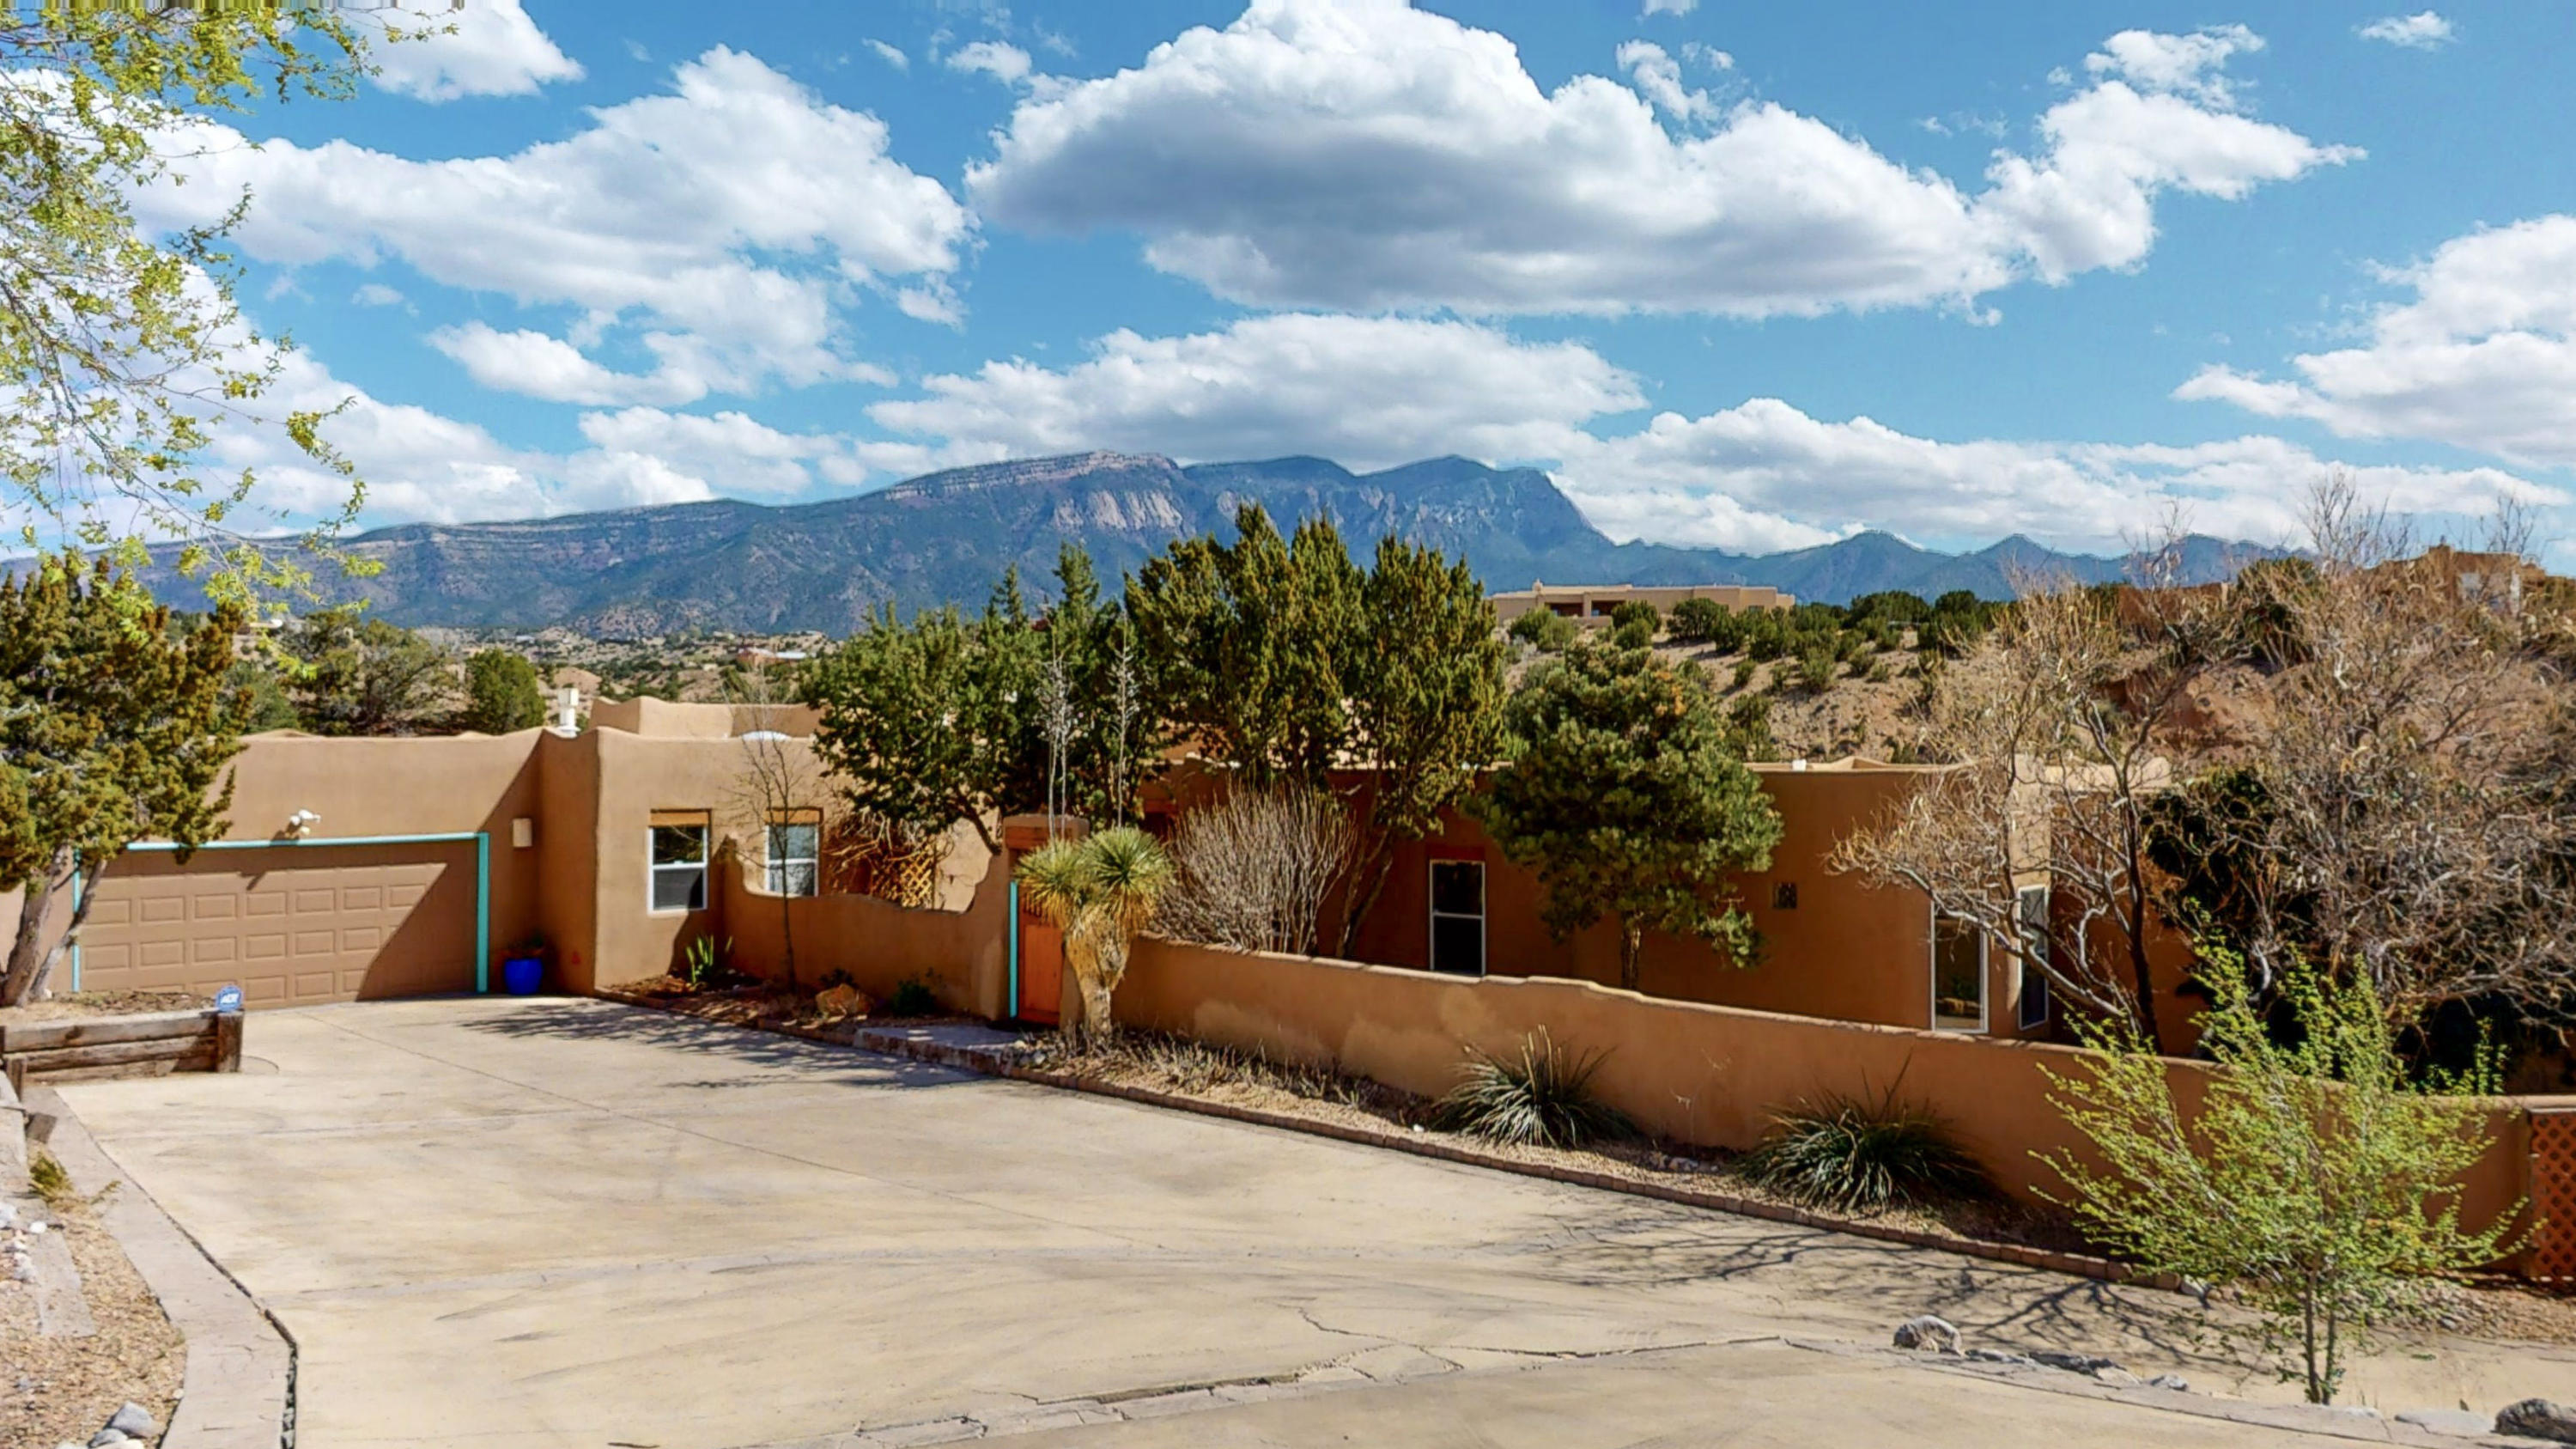 Check out this Placitas beauty with 4 bedrooms, 4 bathrooms and a swimming pool.  Lots of privacy in this home with 4.7 acres of land.  This home is perfect for multi-generational families.  There is a separate entrance to the north side of the home.  The unobstructed views of the Sandia Mountains is absolutely amazing. Southwest style home with 3 fire places needs a new owner.  You can have 4 horses on the property.  Check it out.  The home is occupied, it looks vacant in the pictures but it is occupied.